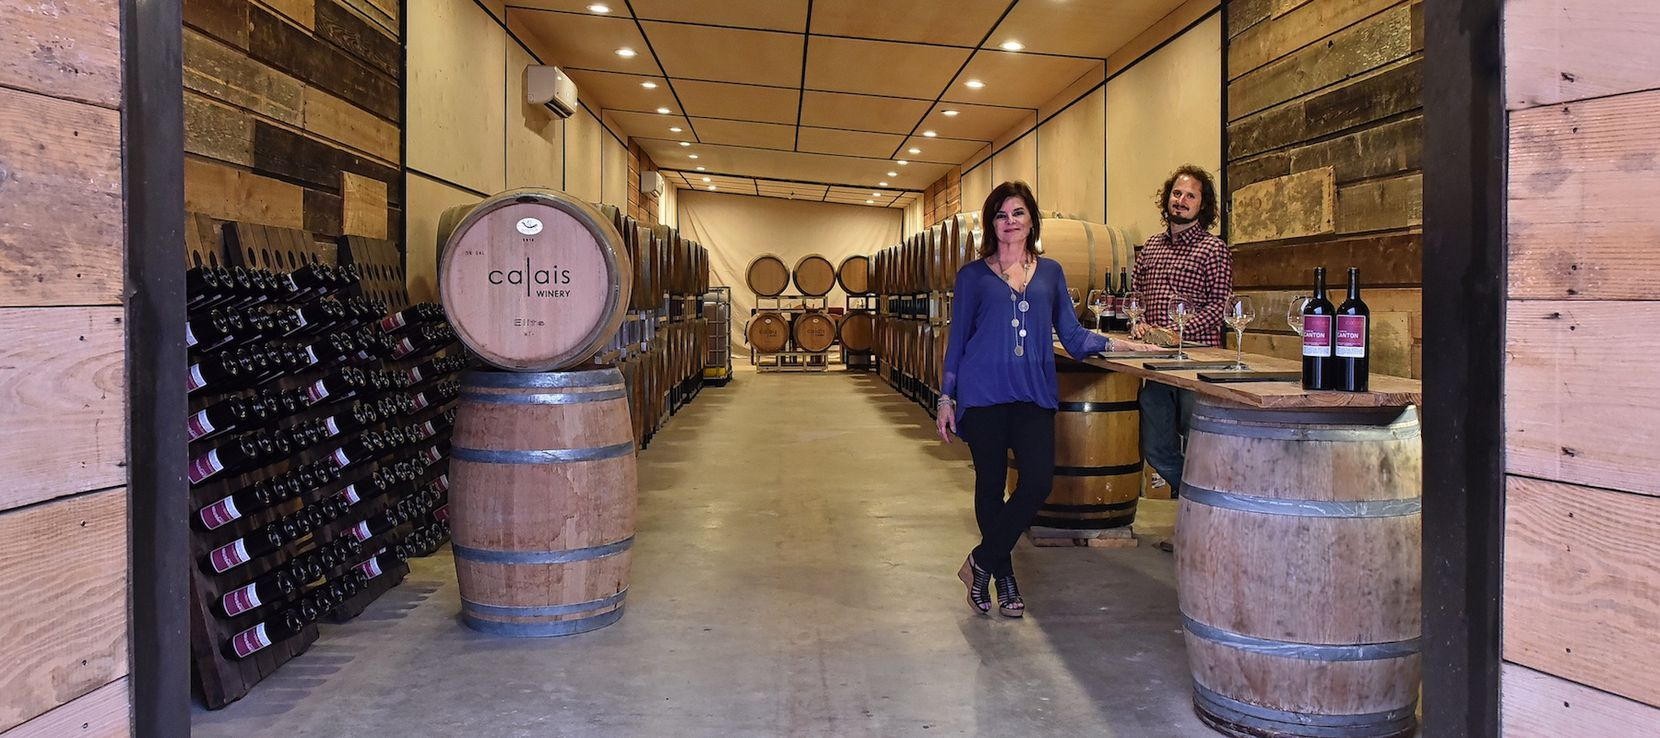 Benjamin Calais, right, is owner and winemaker at Calais Winery.